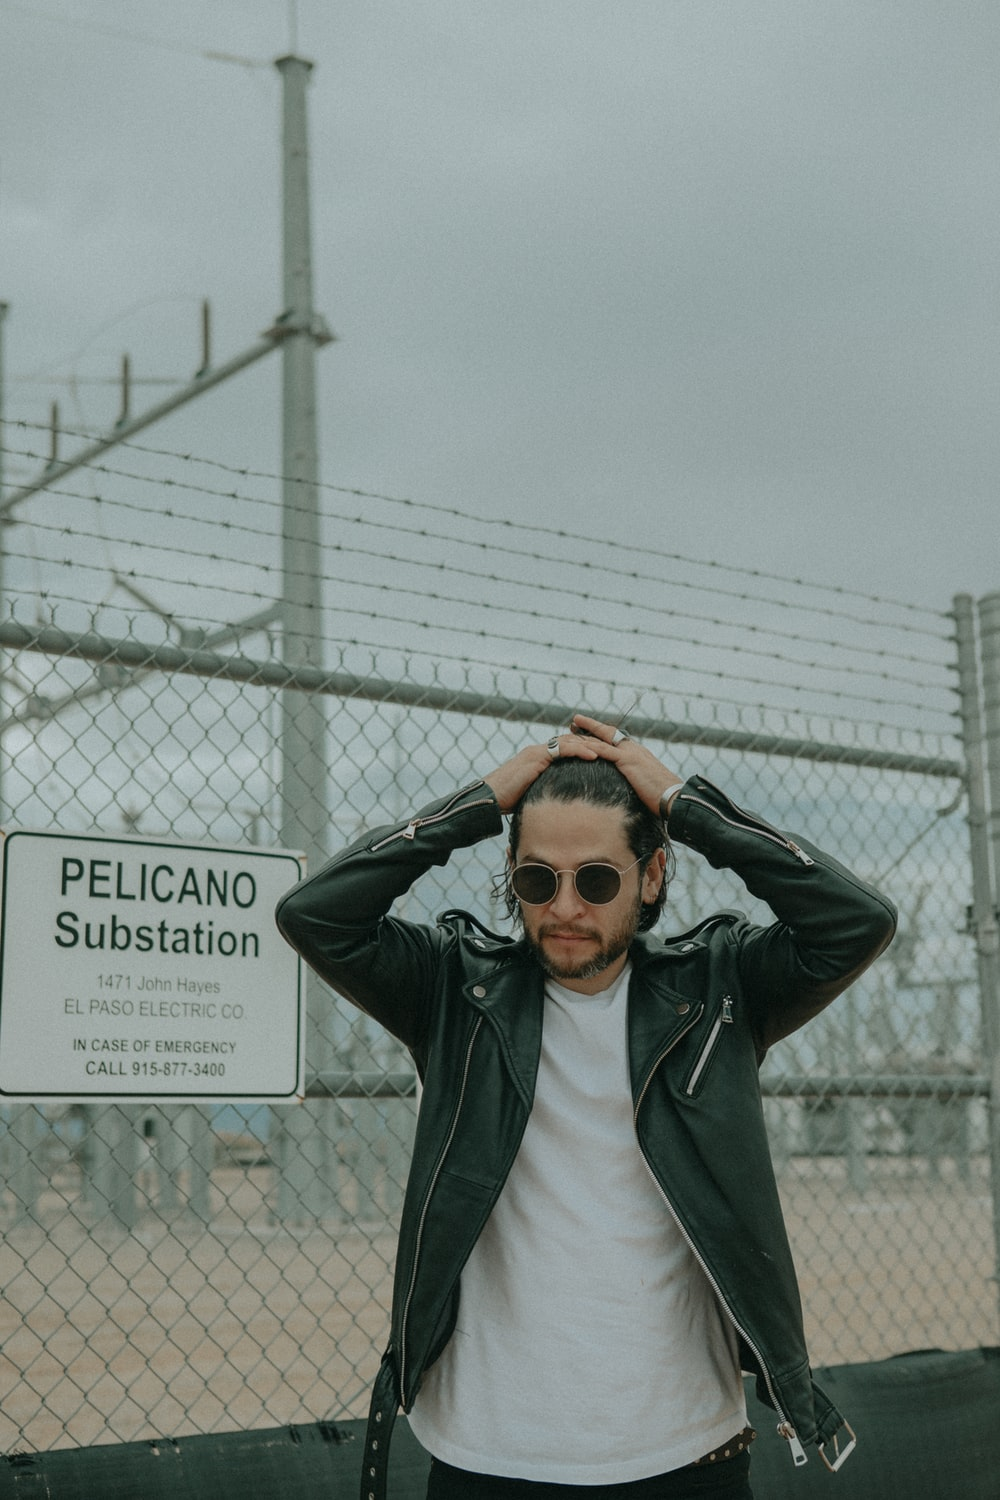 man wearing black leather jacket standing beside chain link fence